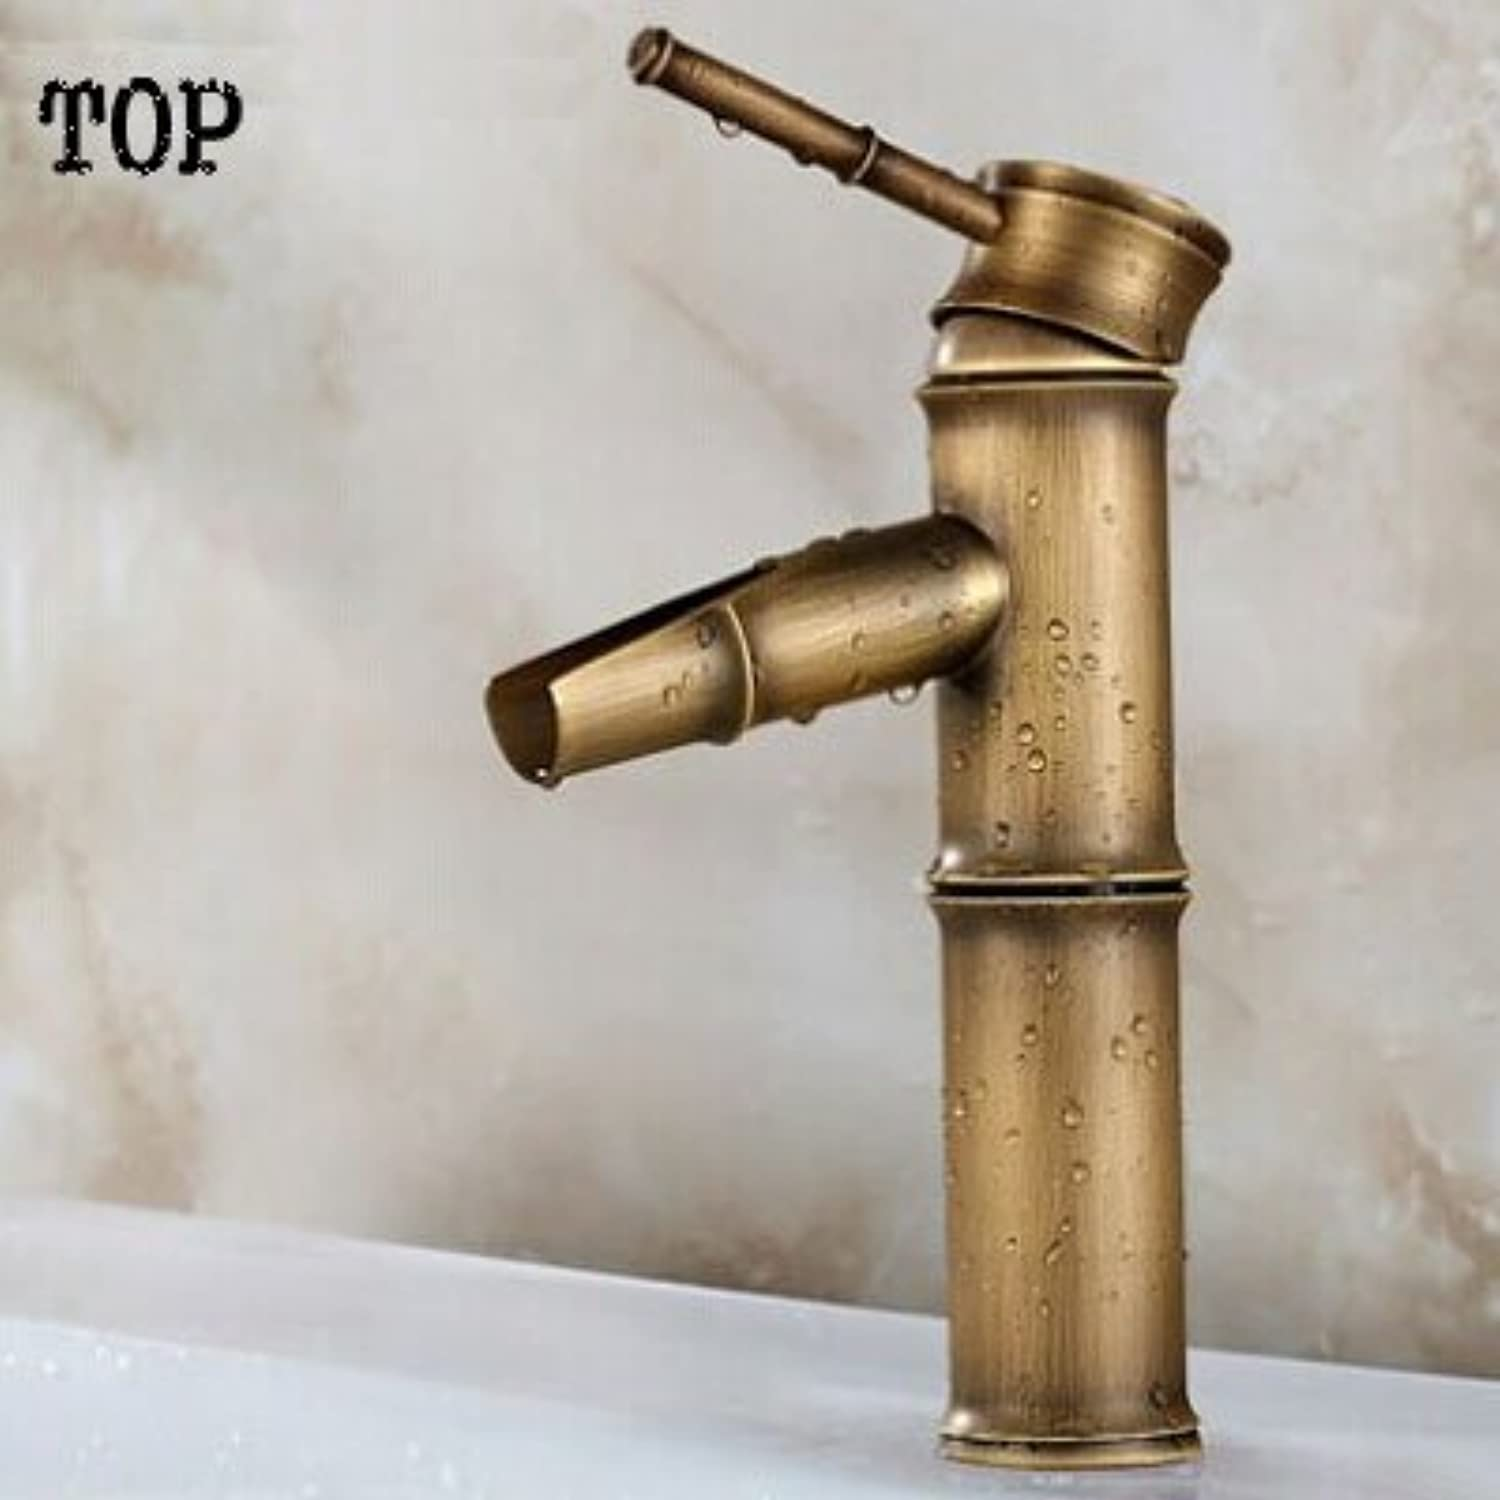 Westbrass 14 All Exposed 17 Gauge Brass Tip-Toe Drain Bath Waste and Overflow with 2-Hole Faceplate Oil Rubbed Bronze D3251K-12